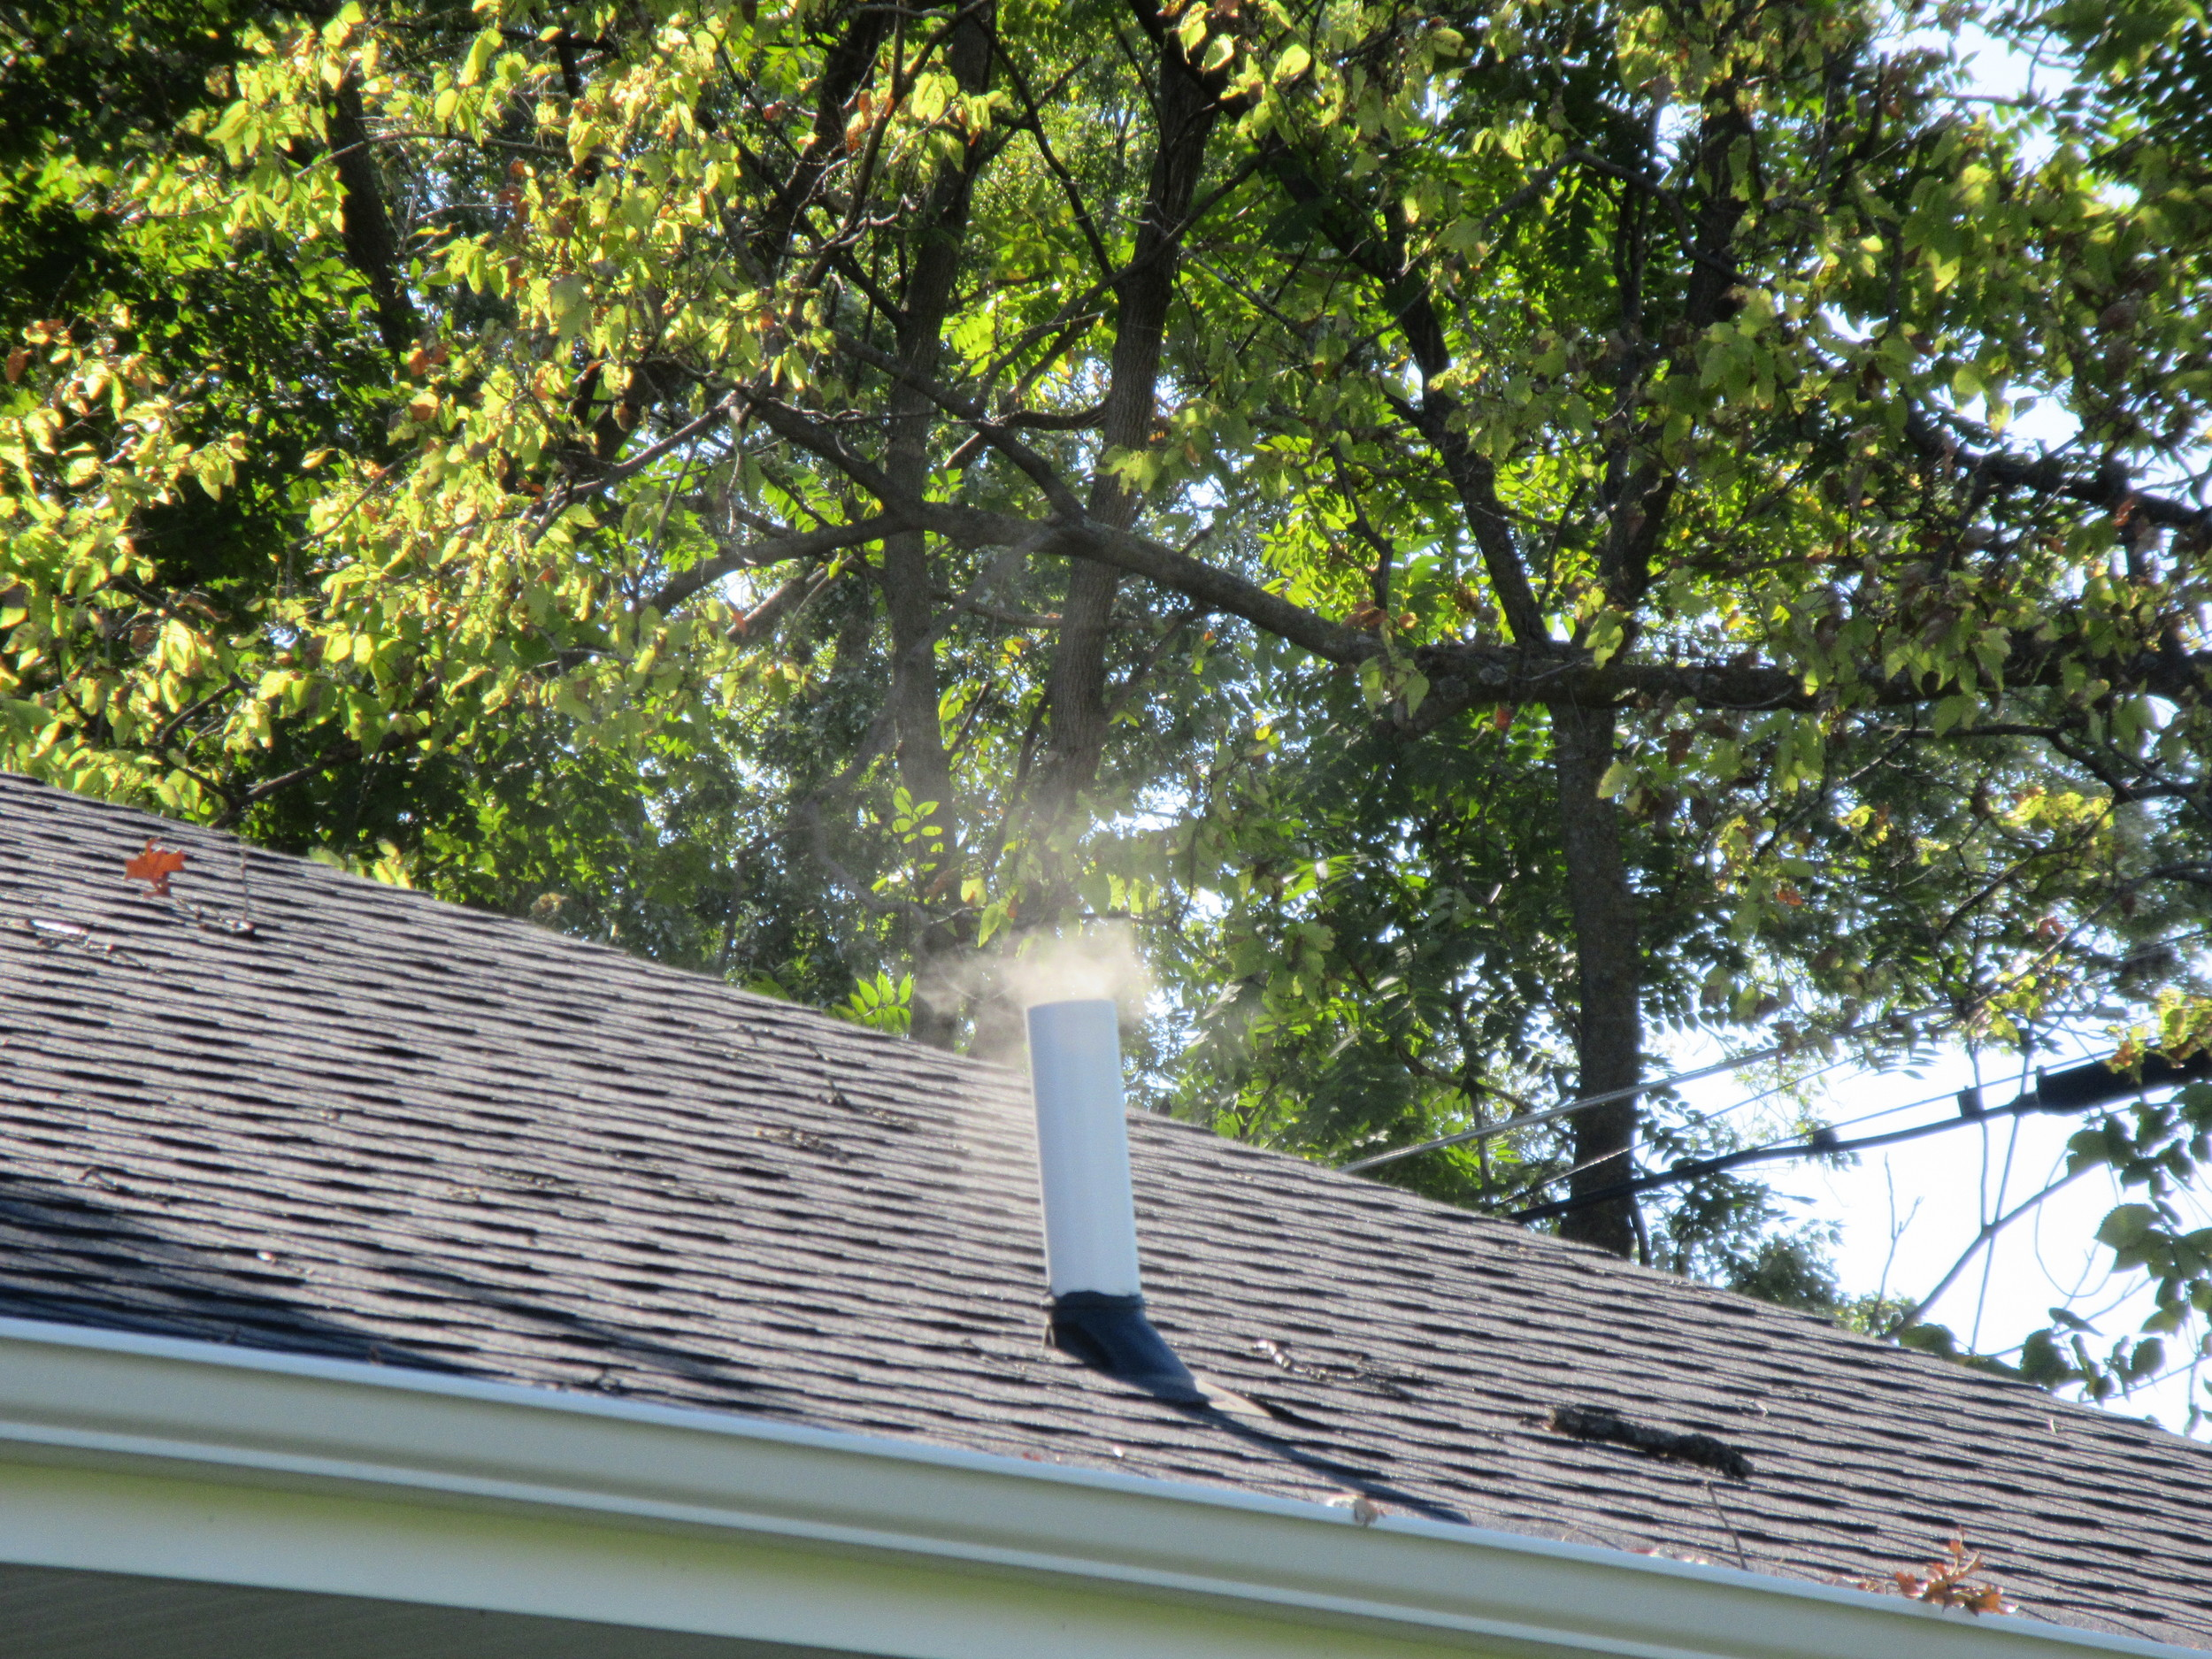 Typical house vent stack smoking as a result of the testing.